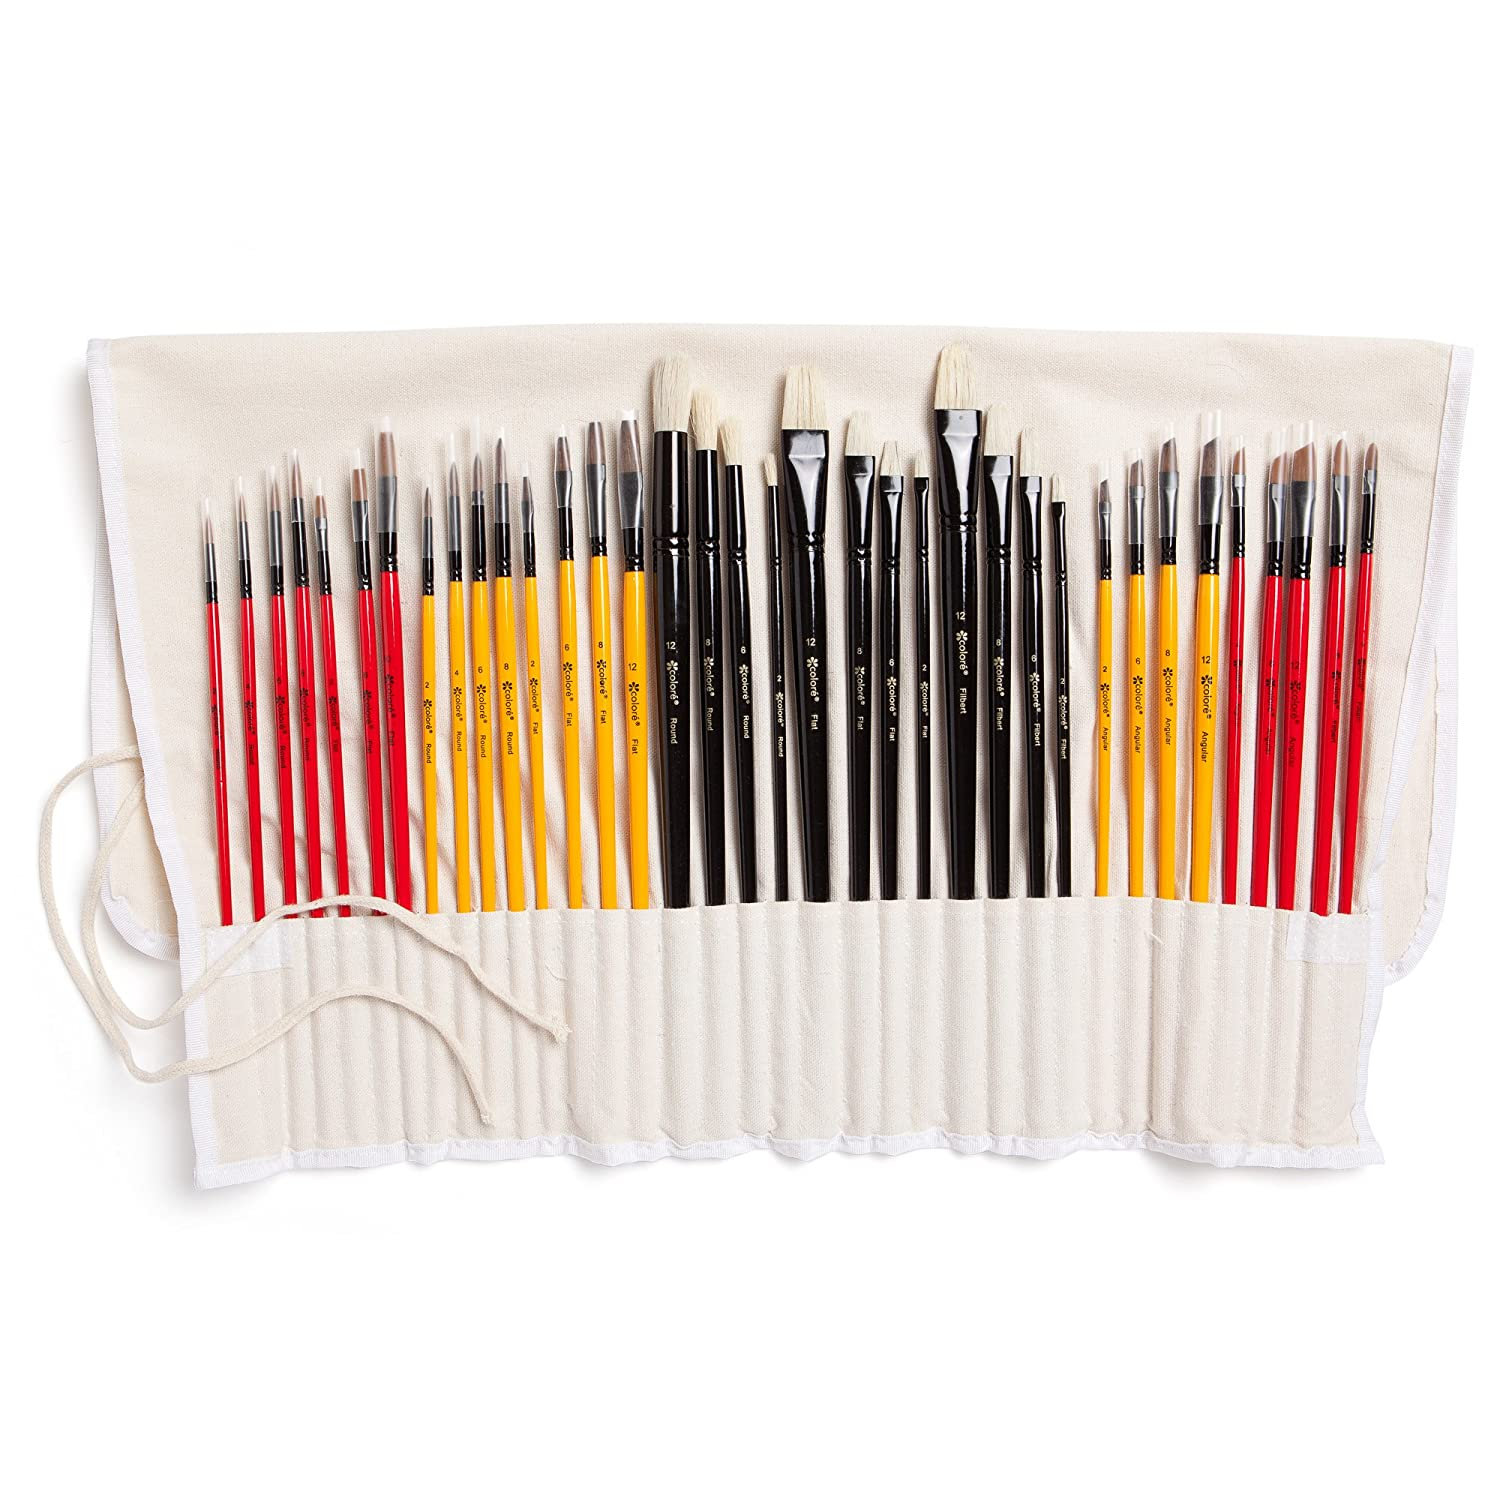 Colore Art Paint Brushes With Nylon Wrapping Case – Complete PACK of 36 Professional Grade Paint Brush Set – 12 Acrylic, 12 Oil & 12 Watercolor Paintbrushes – Lightweight and Durable Painting Supplies 4336961786